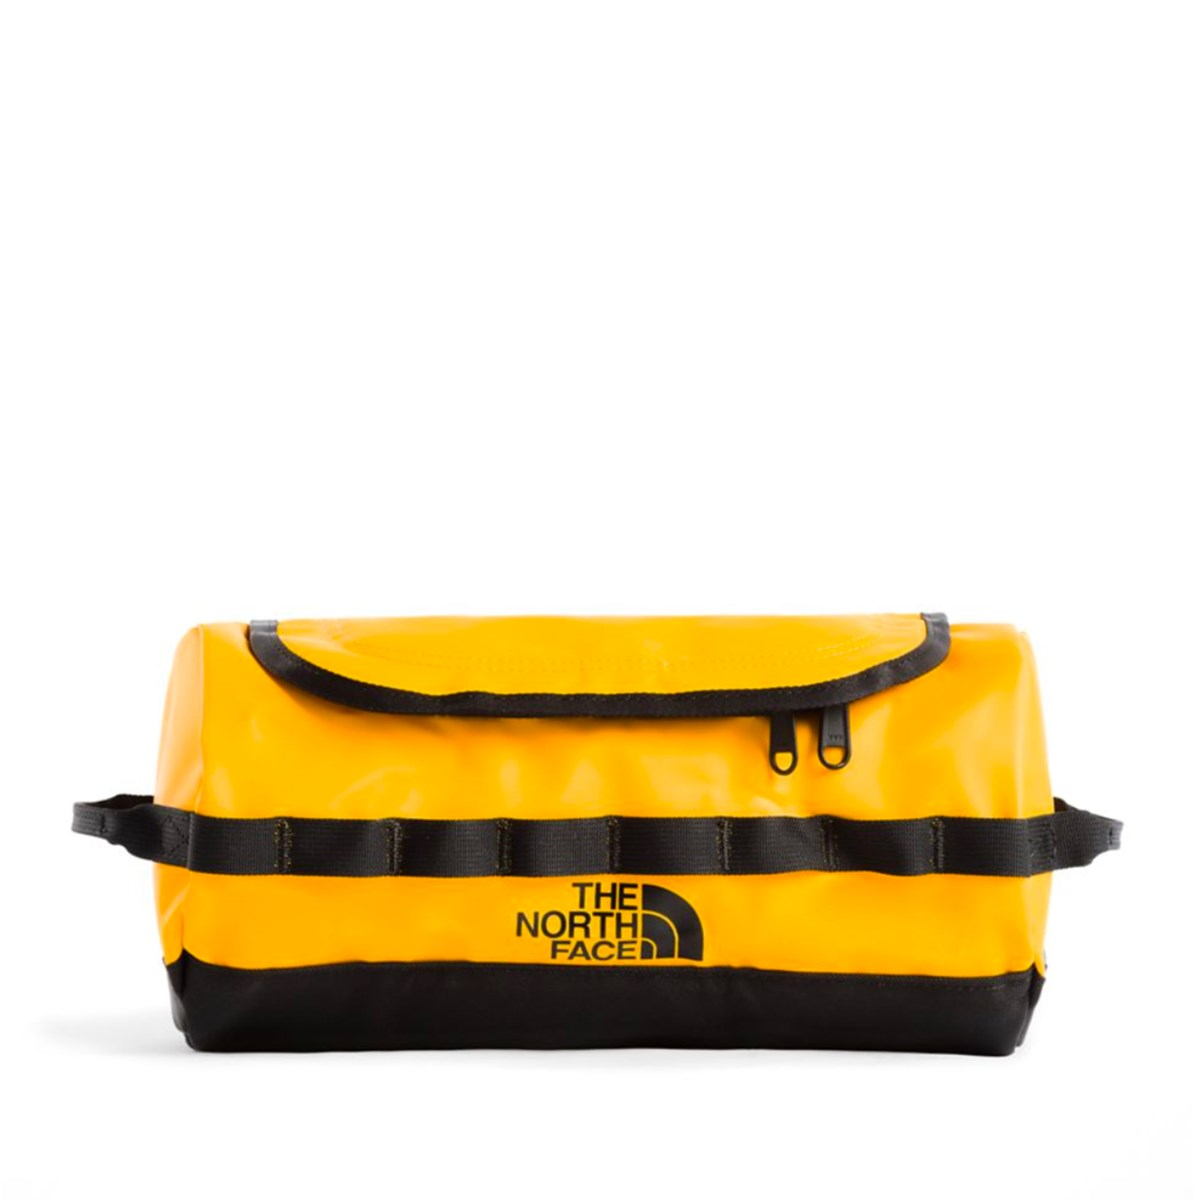 Base Camp Travel Canister in Yellow